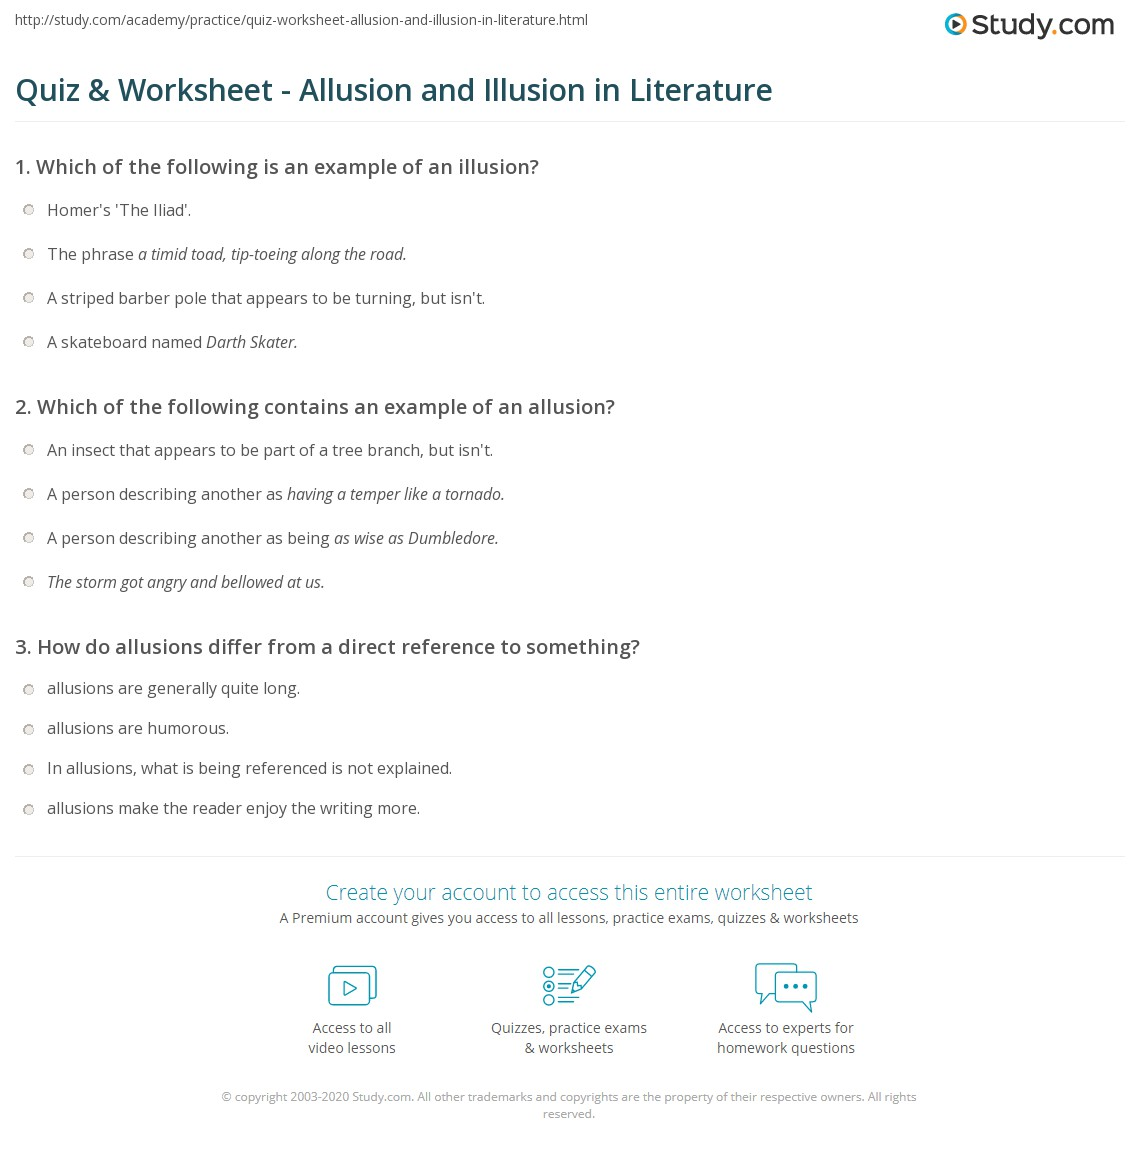 Quiz Worksheet Allusion And Illusion In Literature Study